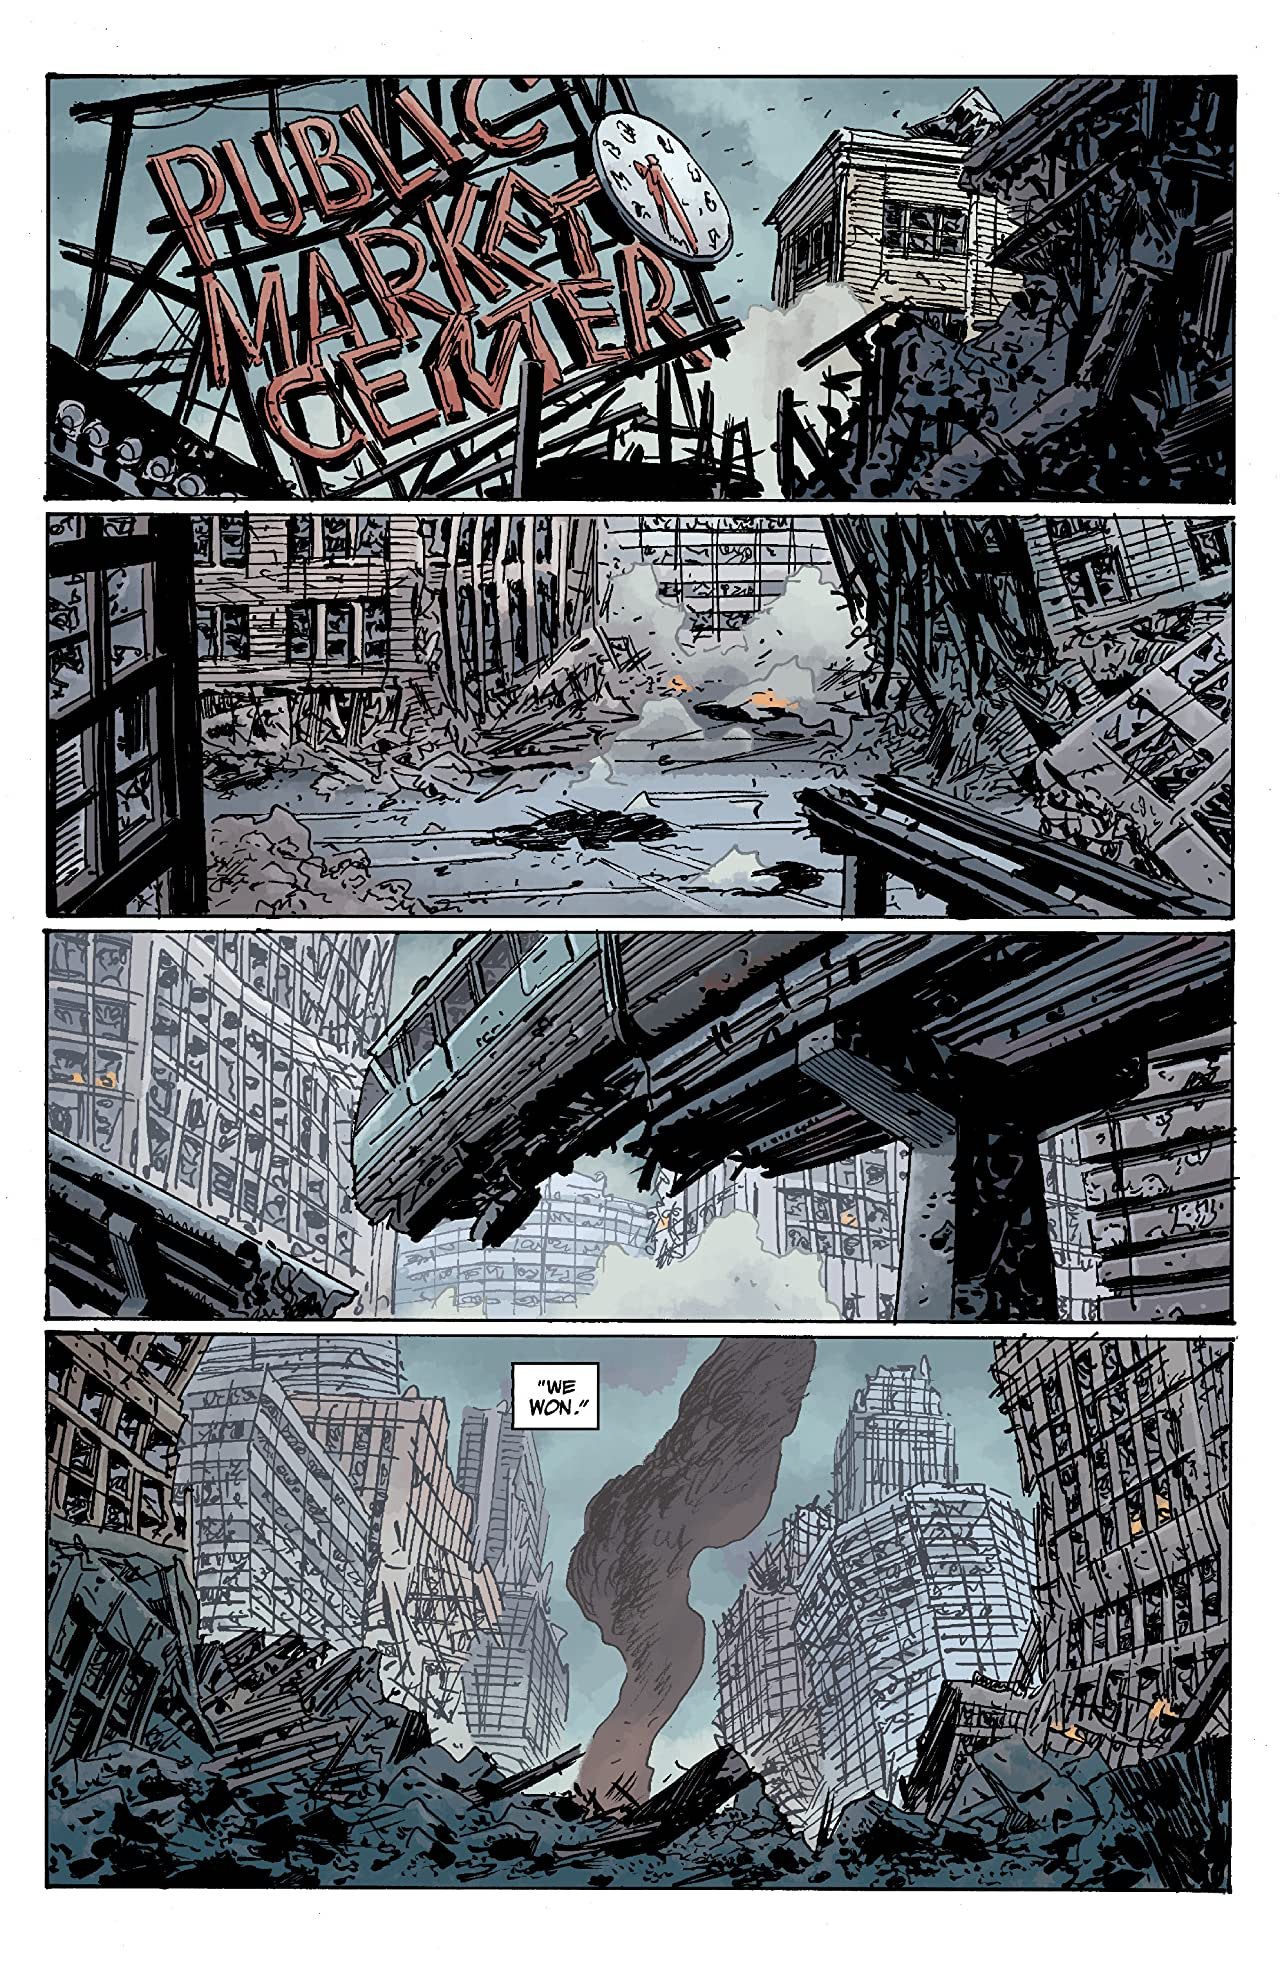 B.P.R.D. Hell on Earth: Seattle #0